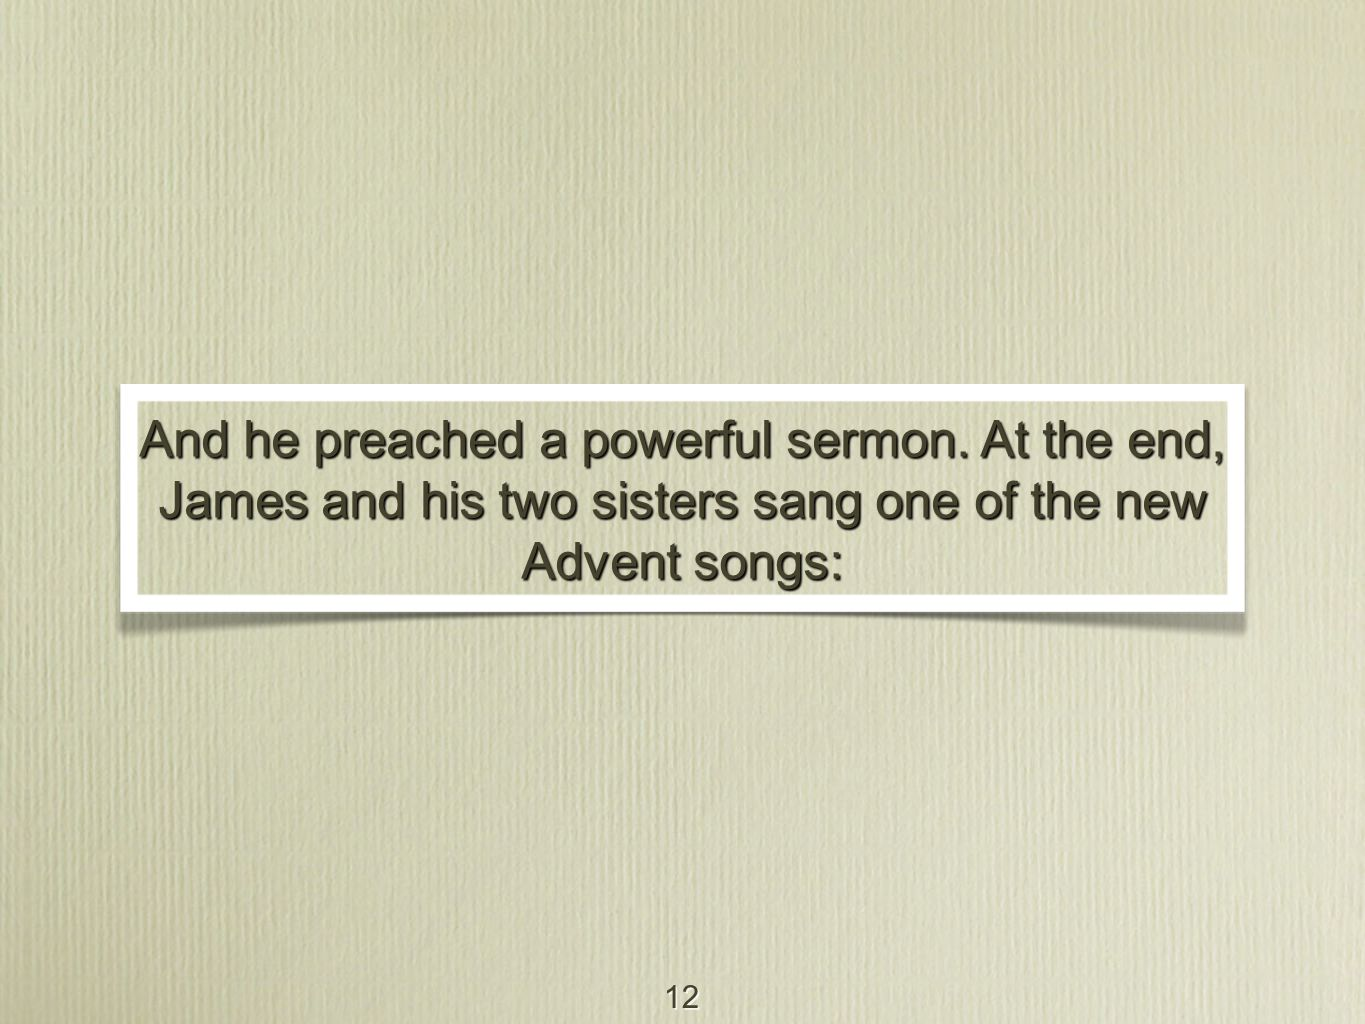 12 And he preached a powerful sermon. At the end, James and his two sisters sang one of the new Advent songs: